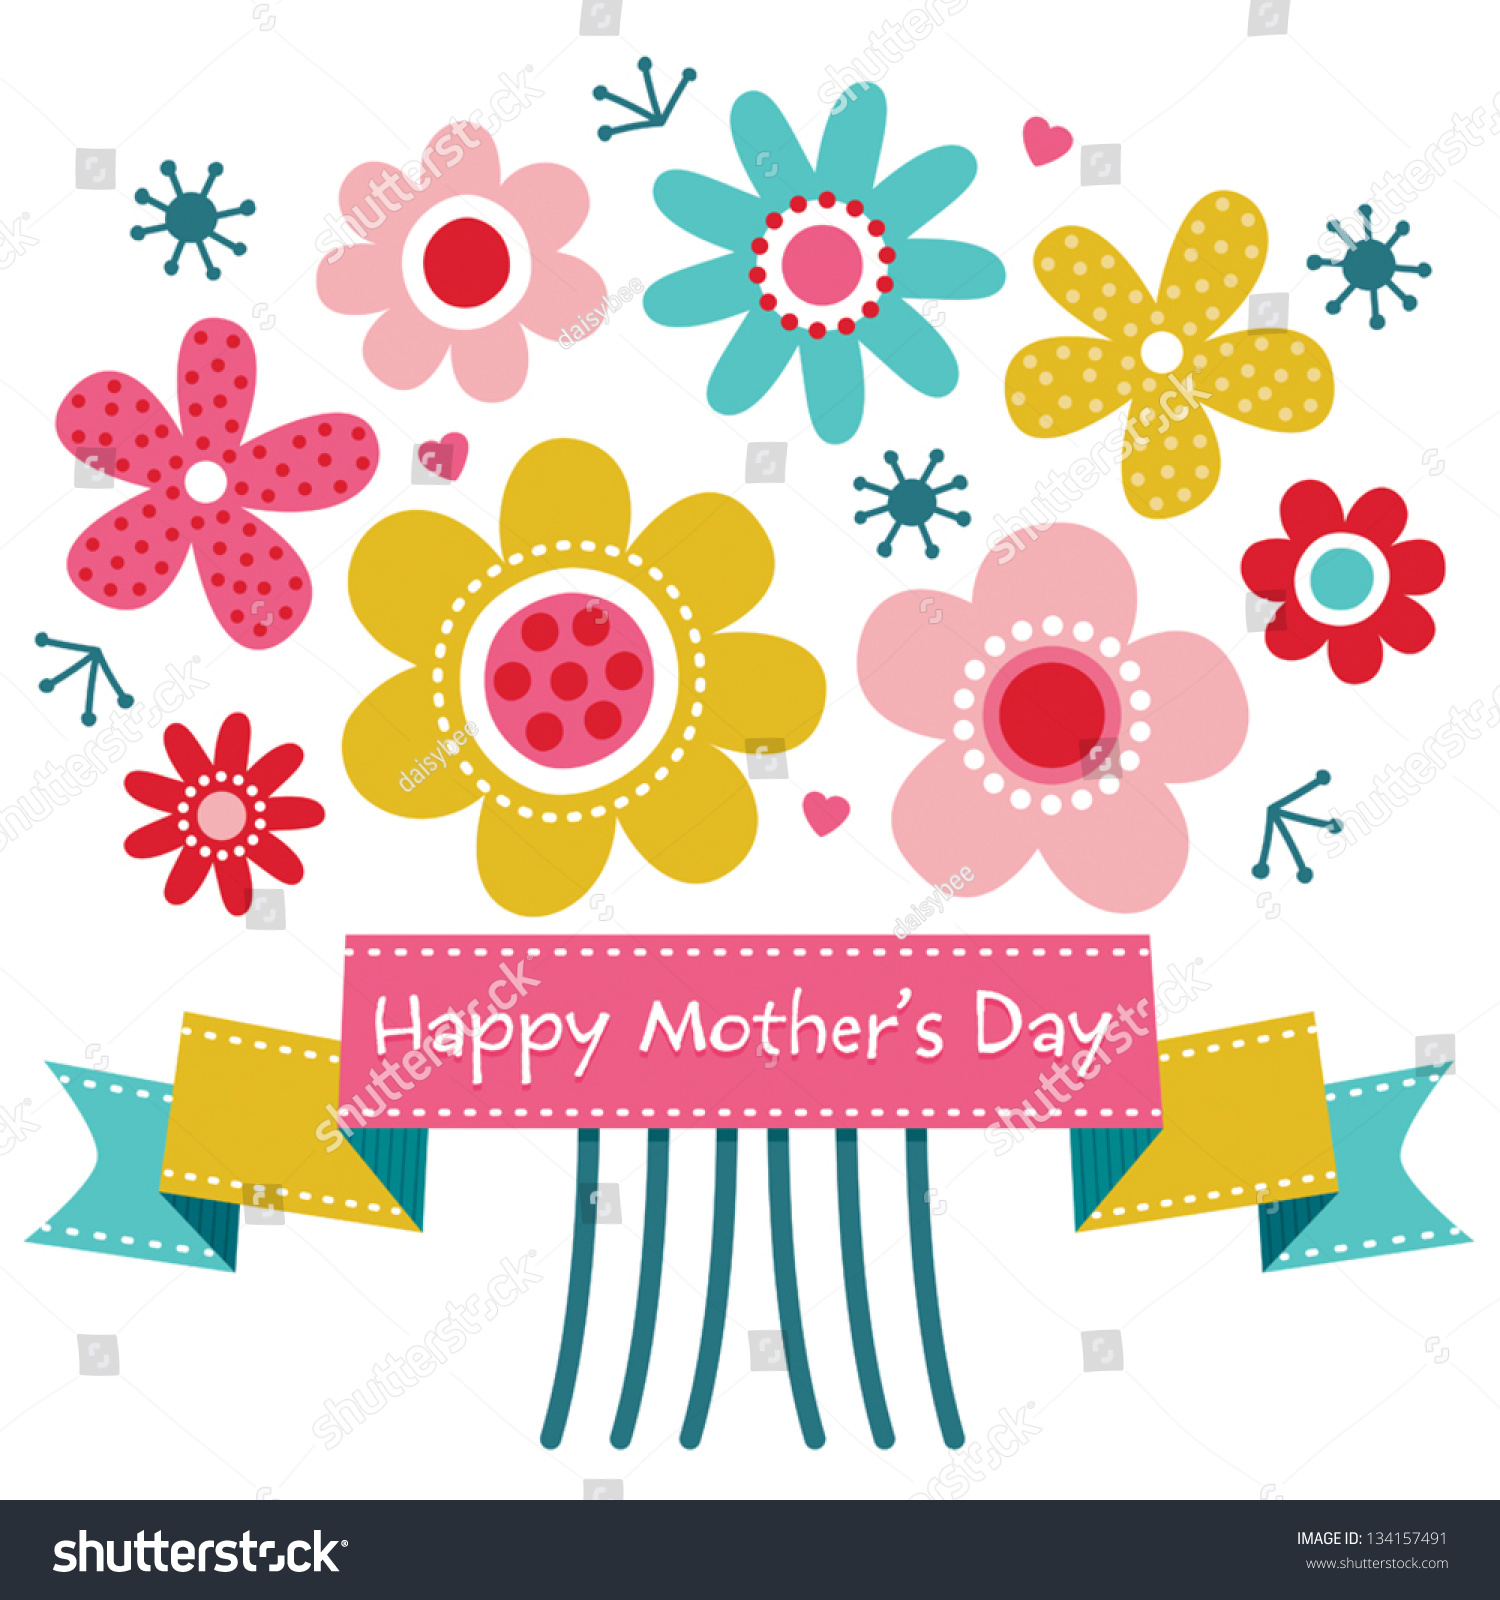 Happy Mothers Day Banner Clipart | www.imgkid.com - The ...